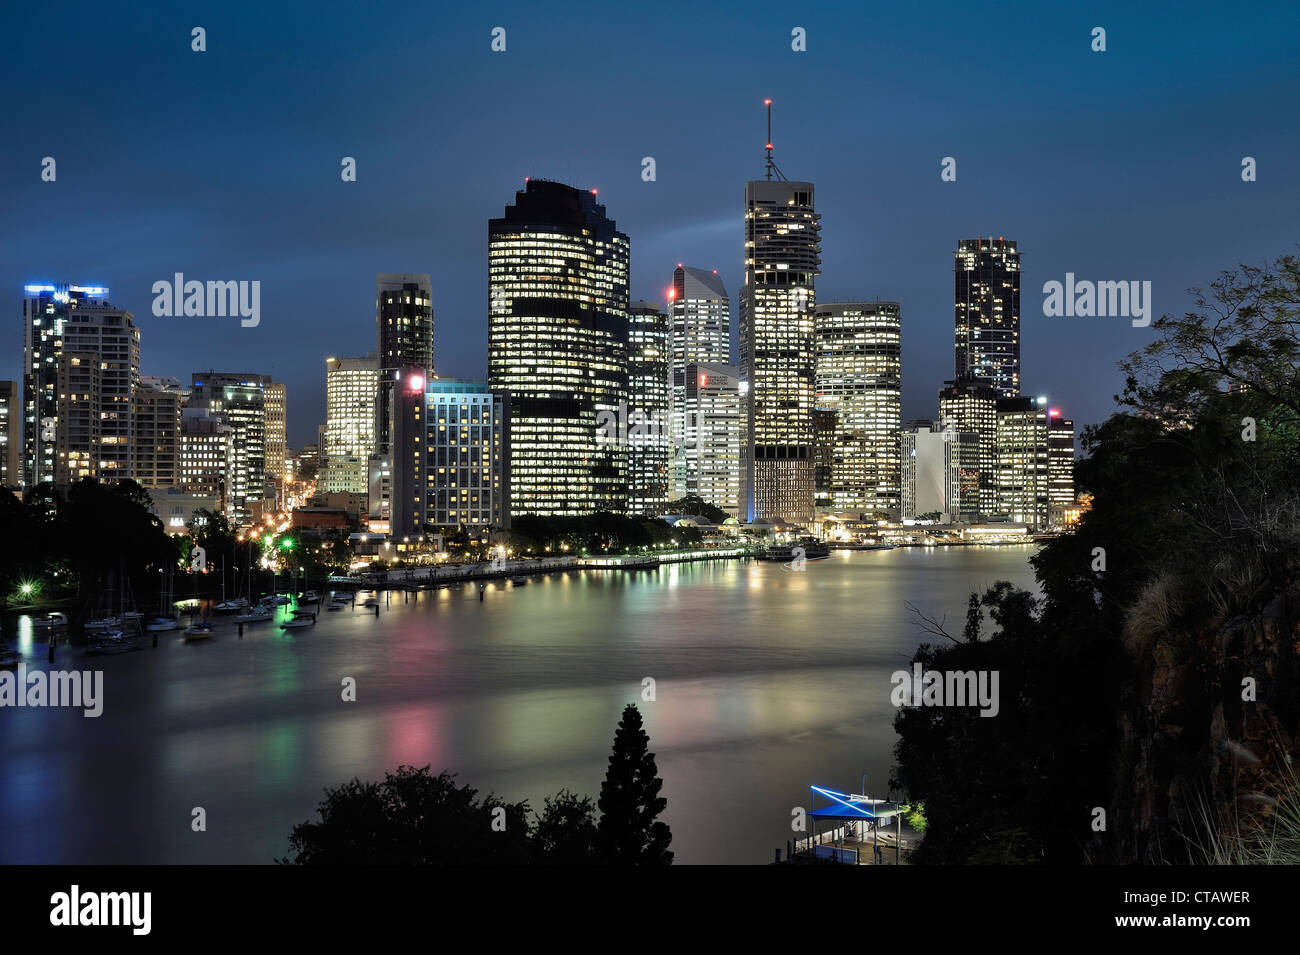 Skyline of Brisbane night, Brisbane River, Queensland, Australia - Stock Image